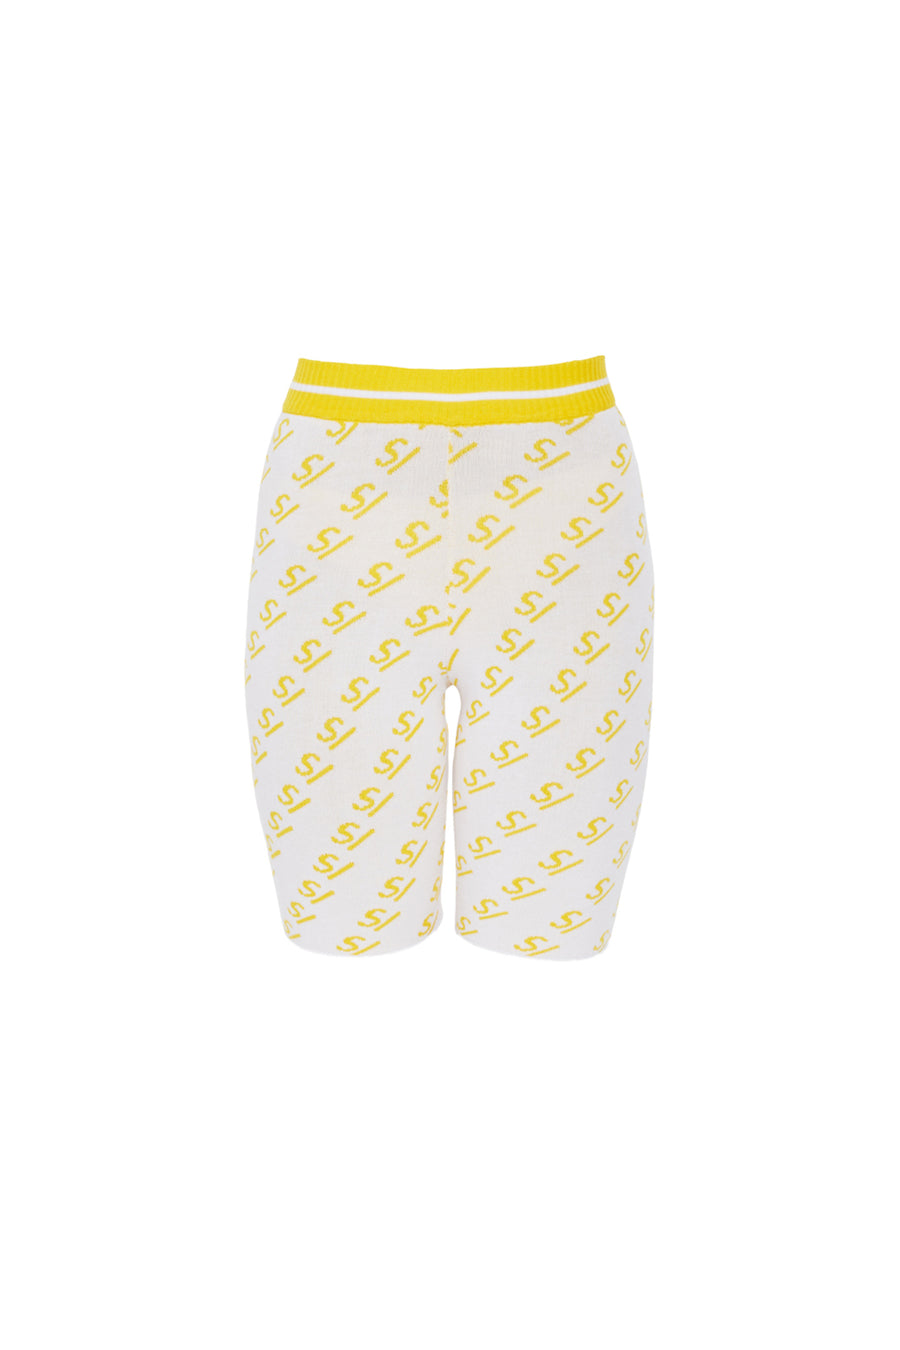 SV Logo Knit Yellow Biker Shorts